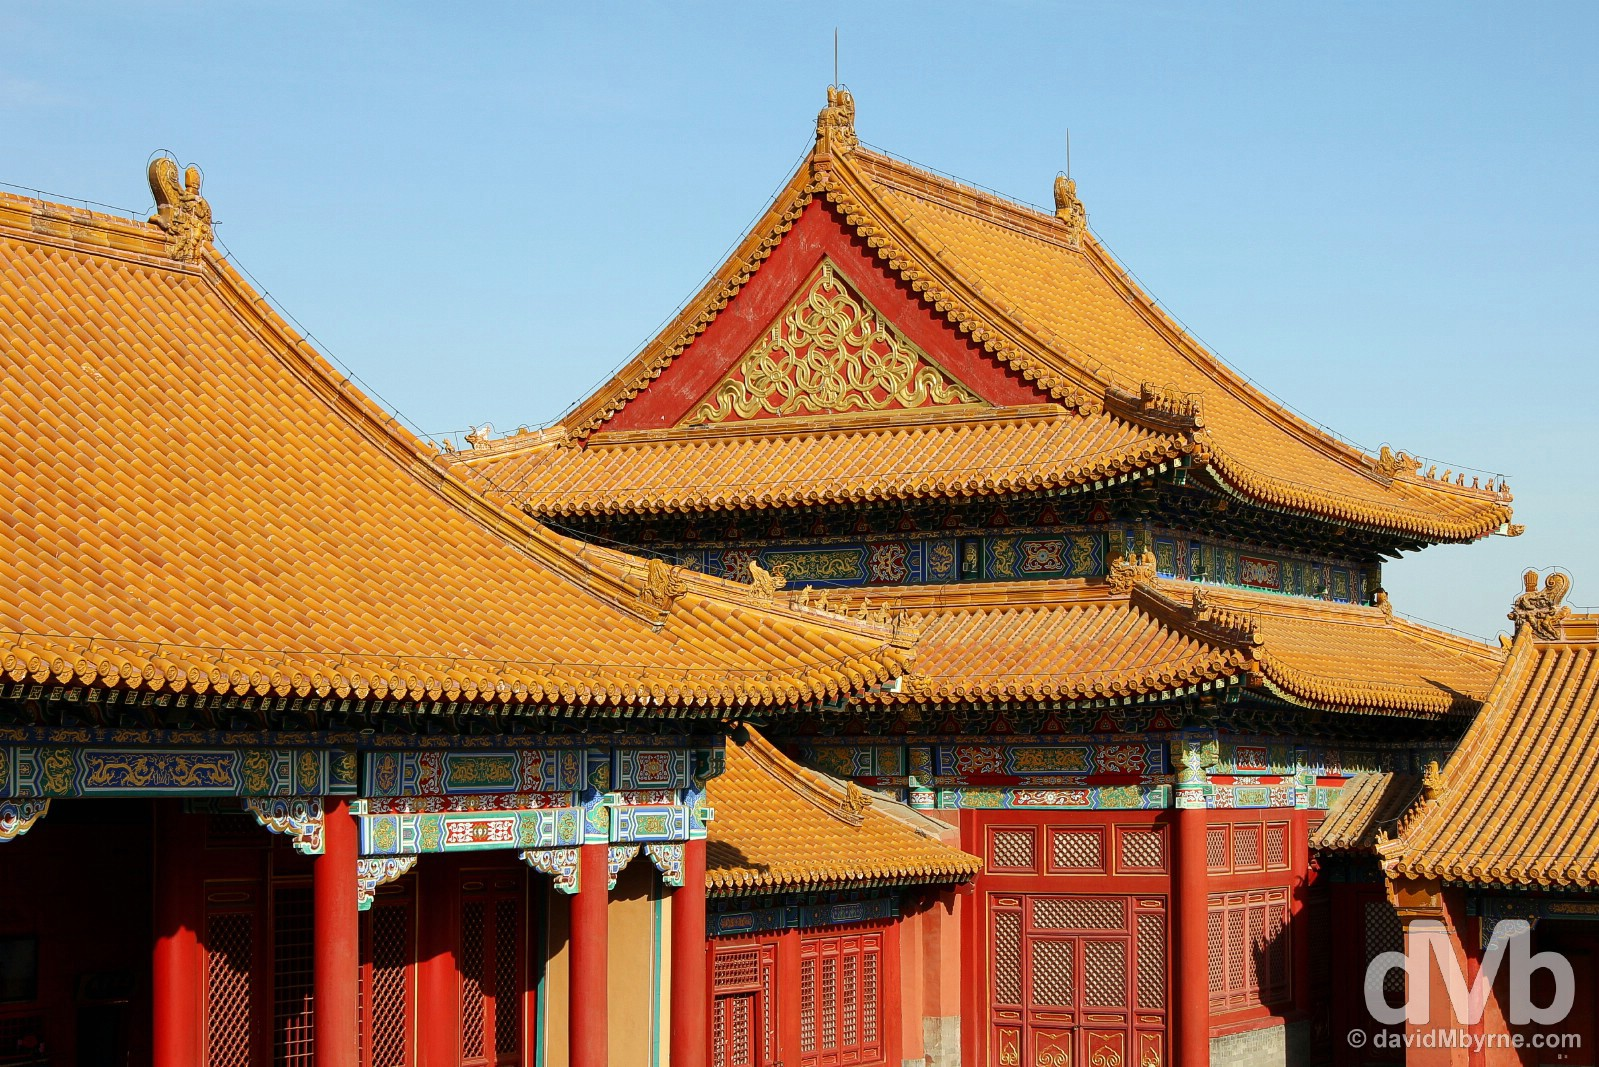 Buildings in the Place Museum, a.k.a. The Forbidden City, in Beijing, China. February 4, 2015.